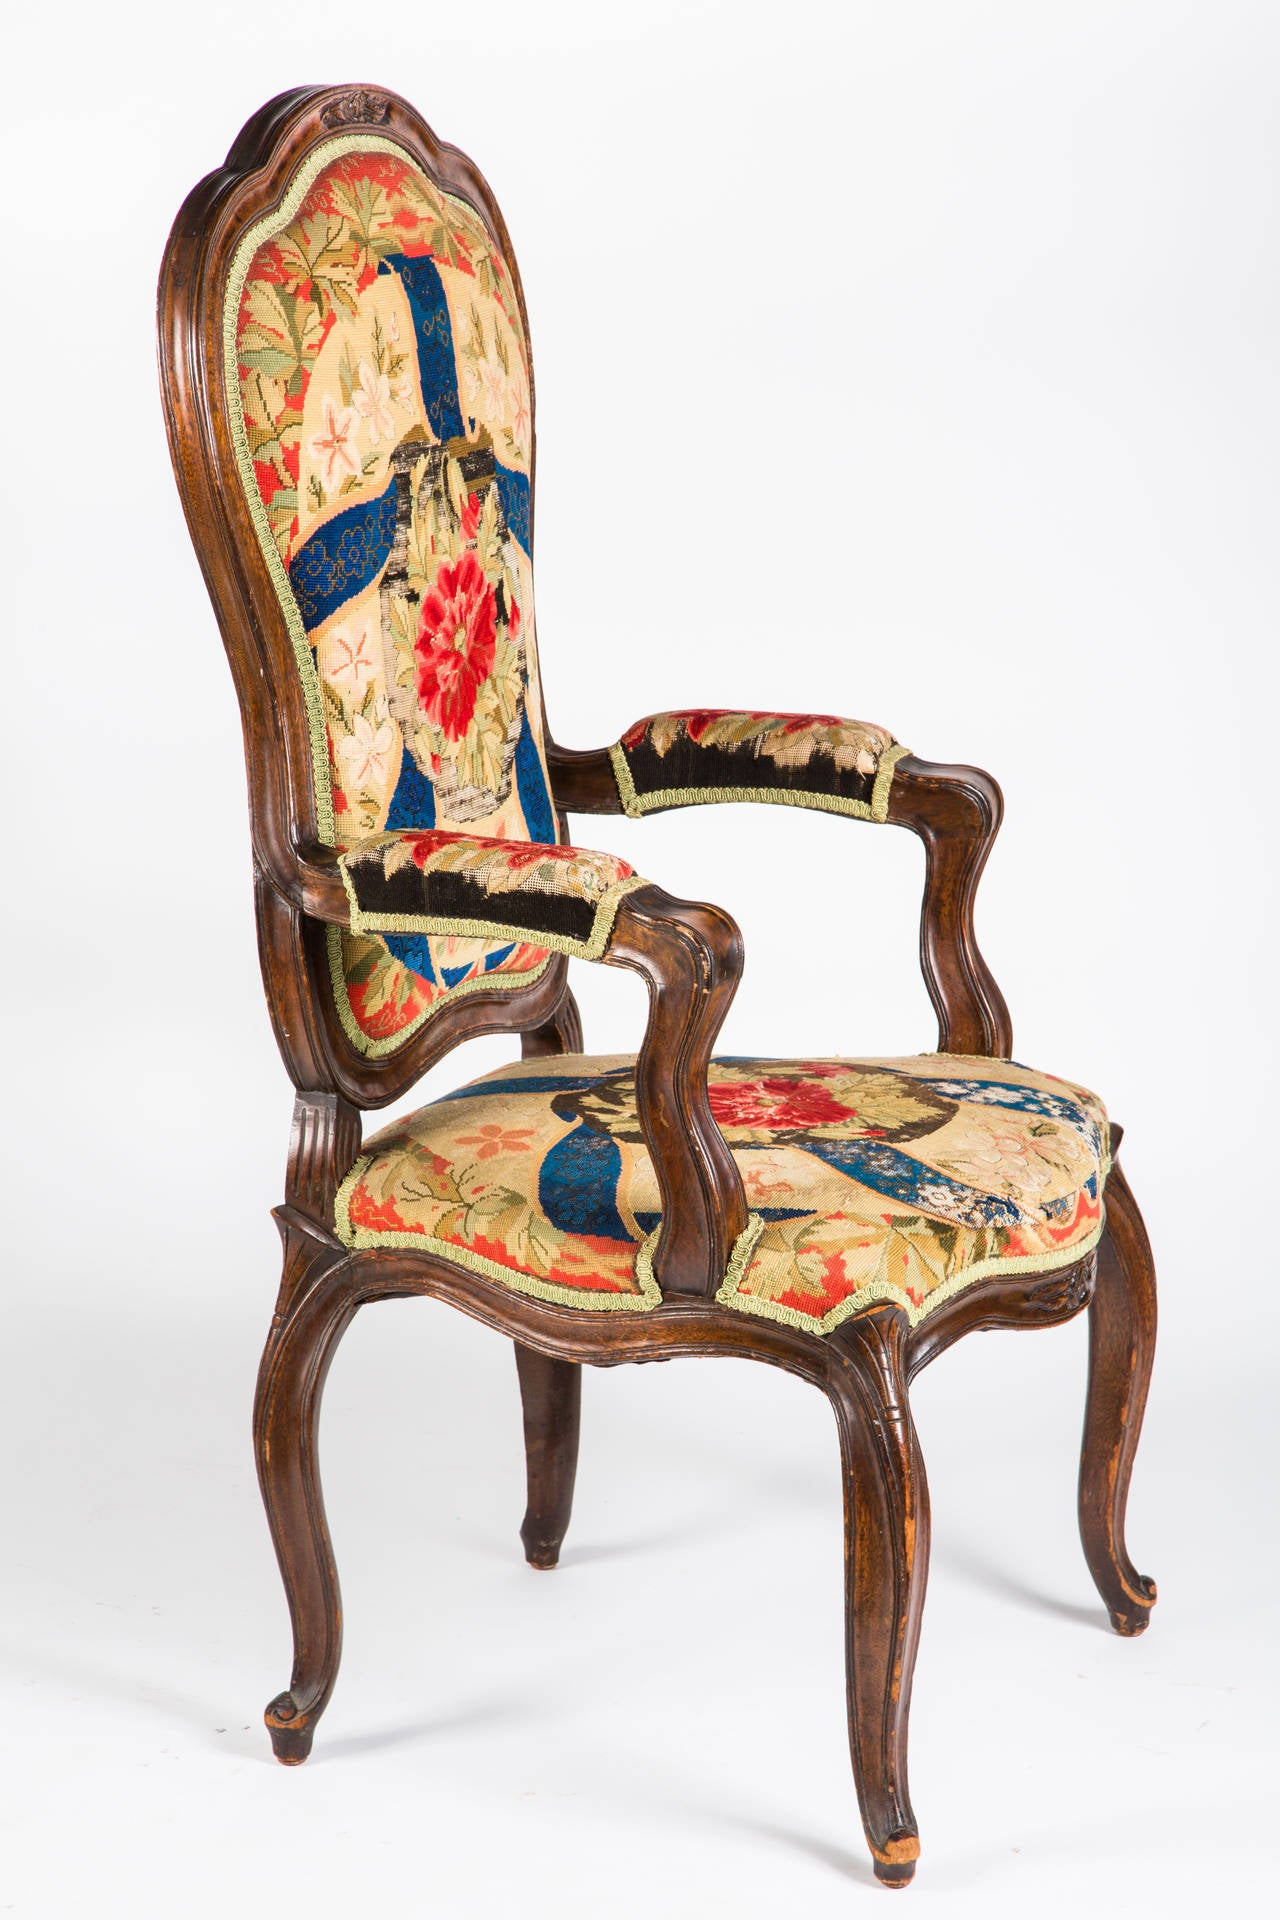 Stately tall back comfortable armchair. Graceful cabriole legs. Upholstered in beautiful needlepoint tapestry. Great accent chair.